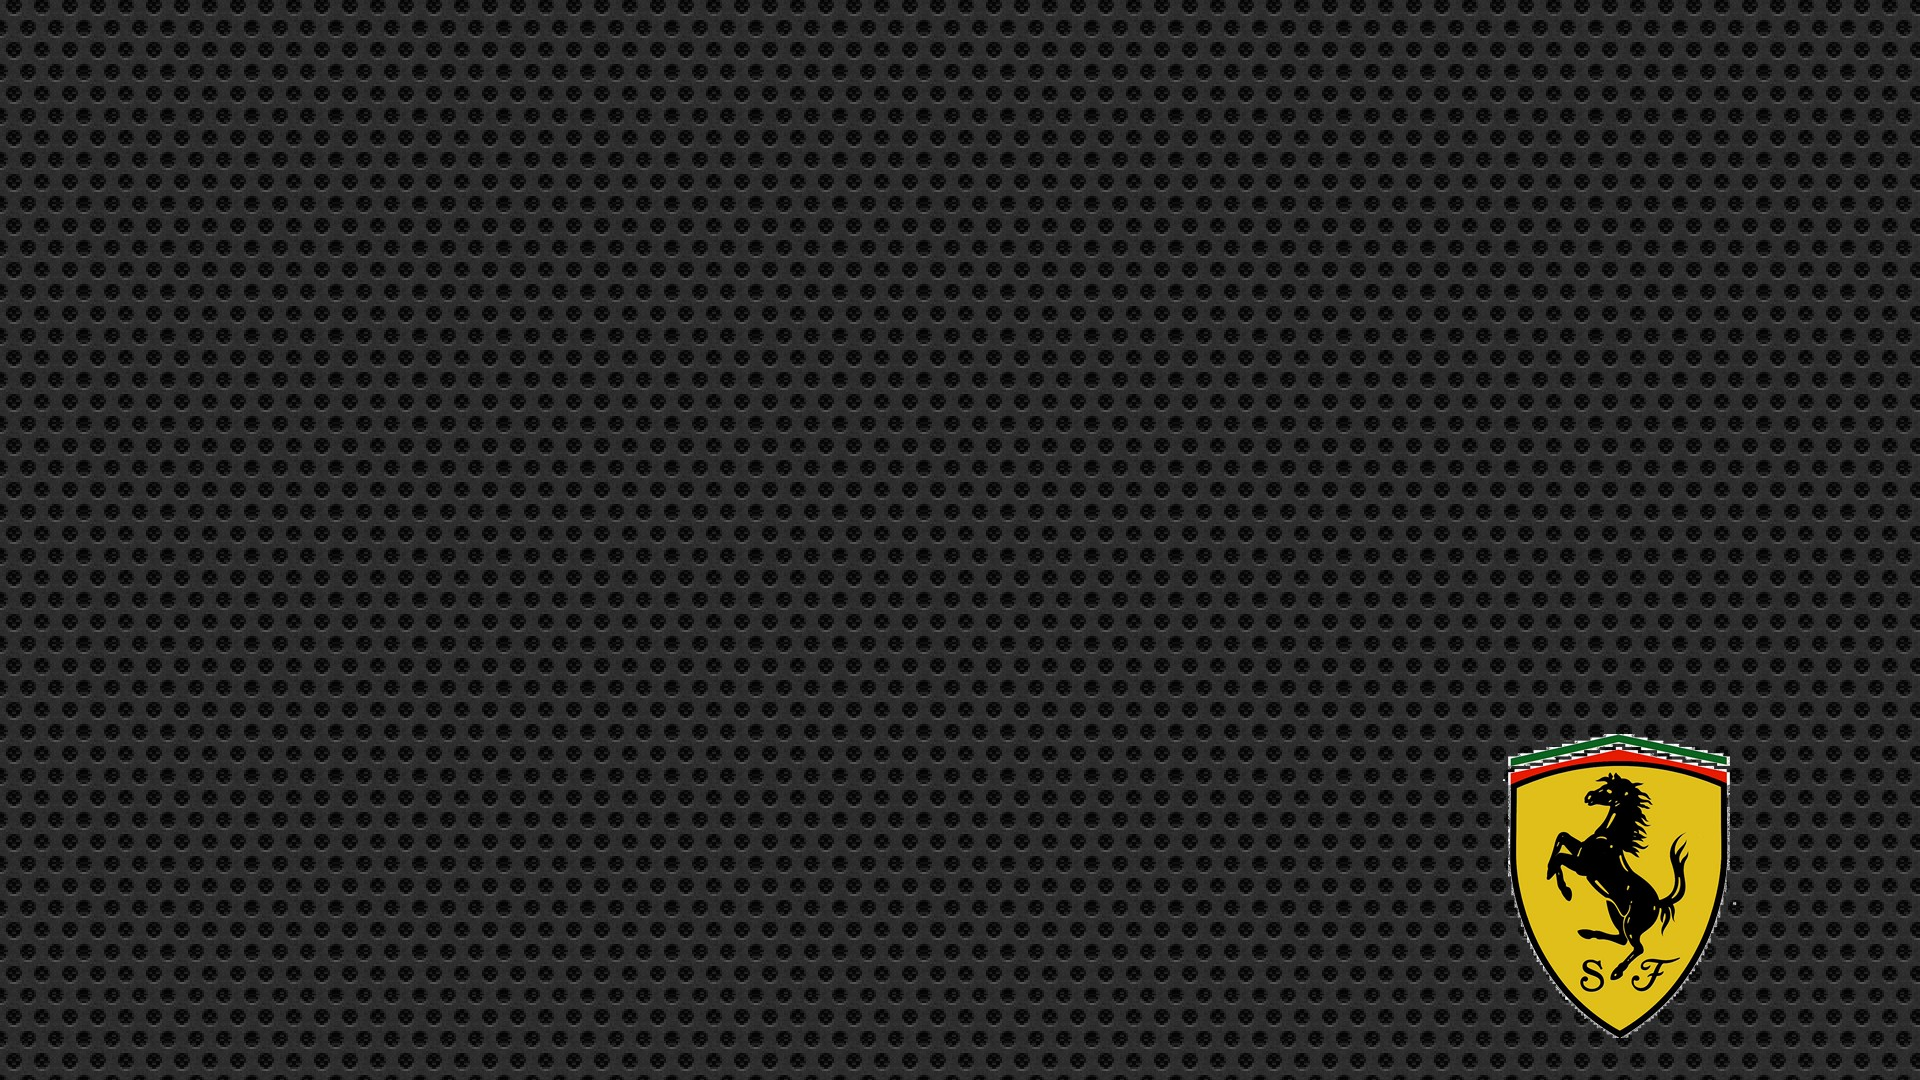 1920x1080px Black Carbon Wallpaper Wallpapersafari